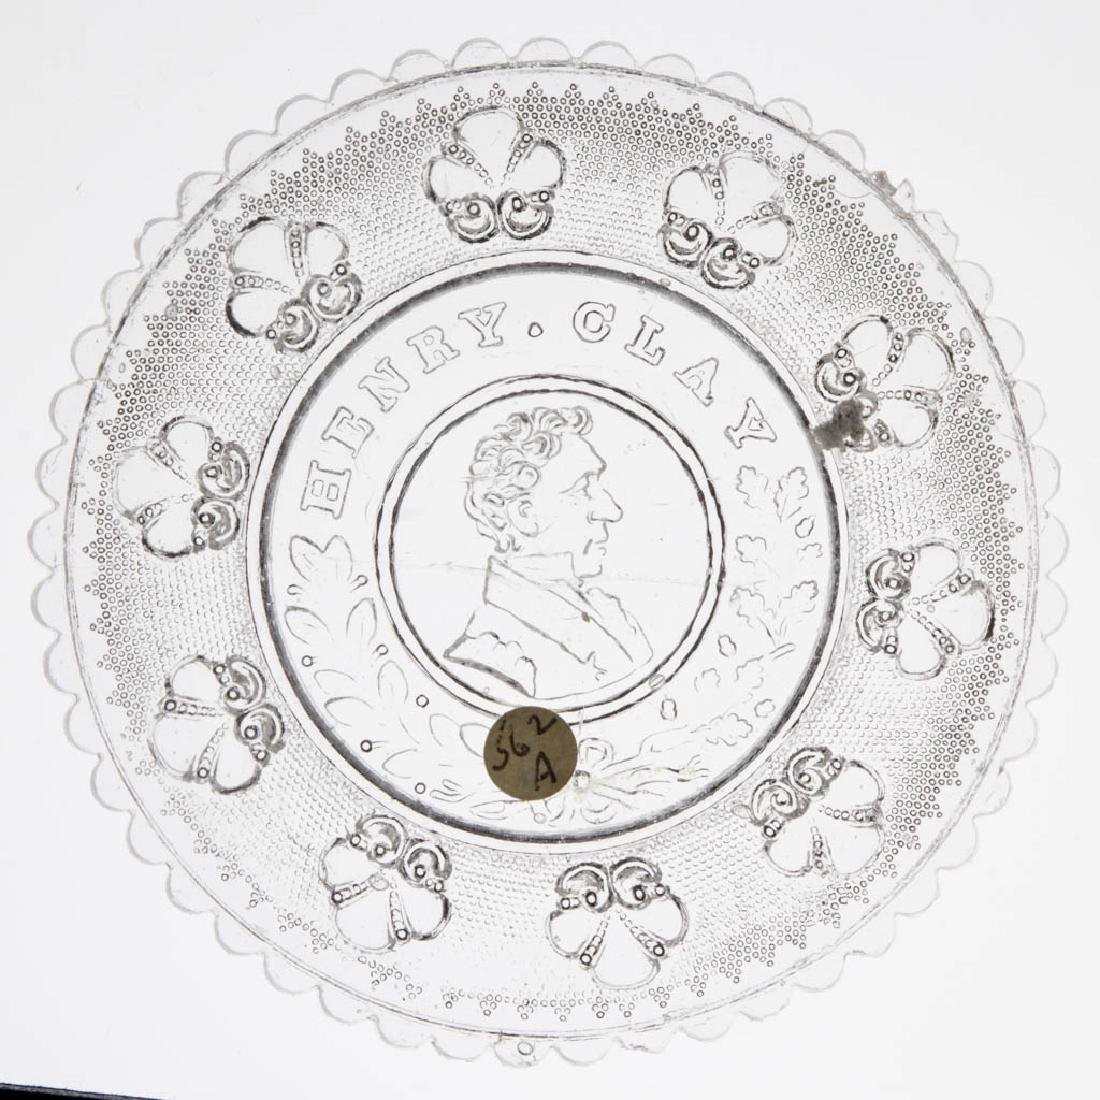 LEE/ROSE NO. 562-A CUP PLATE